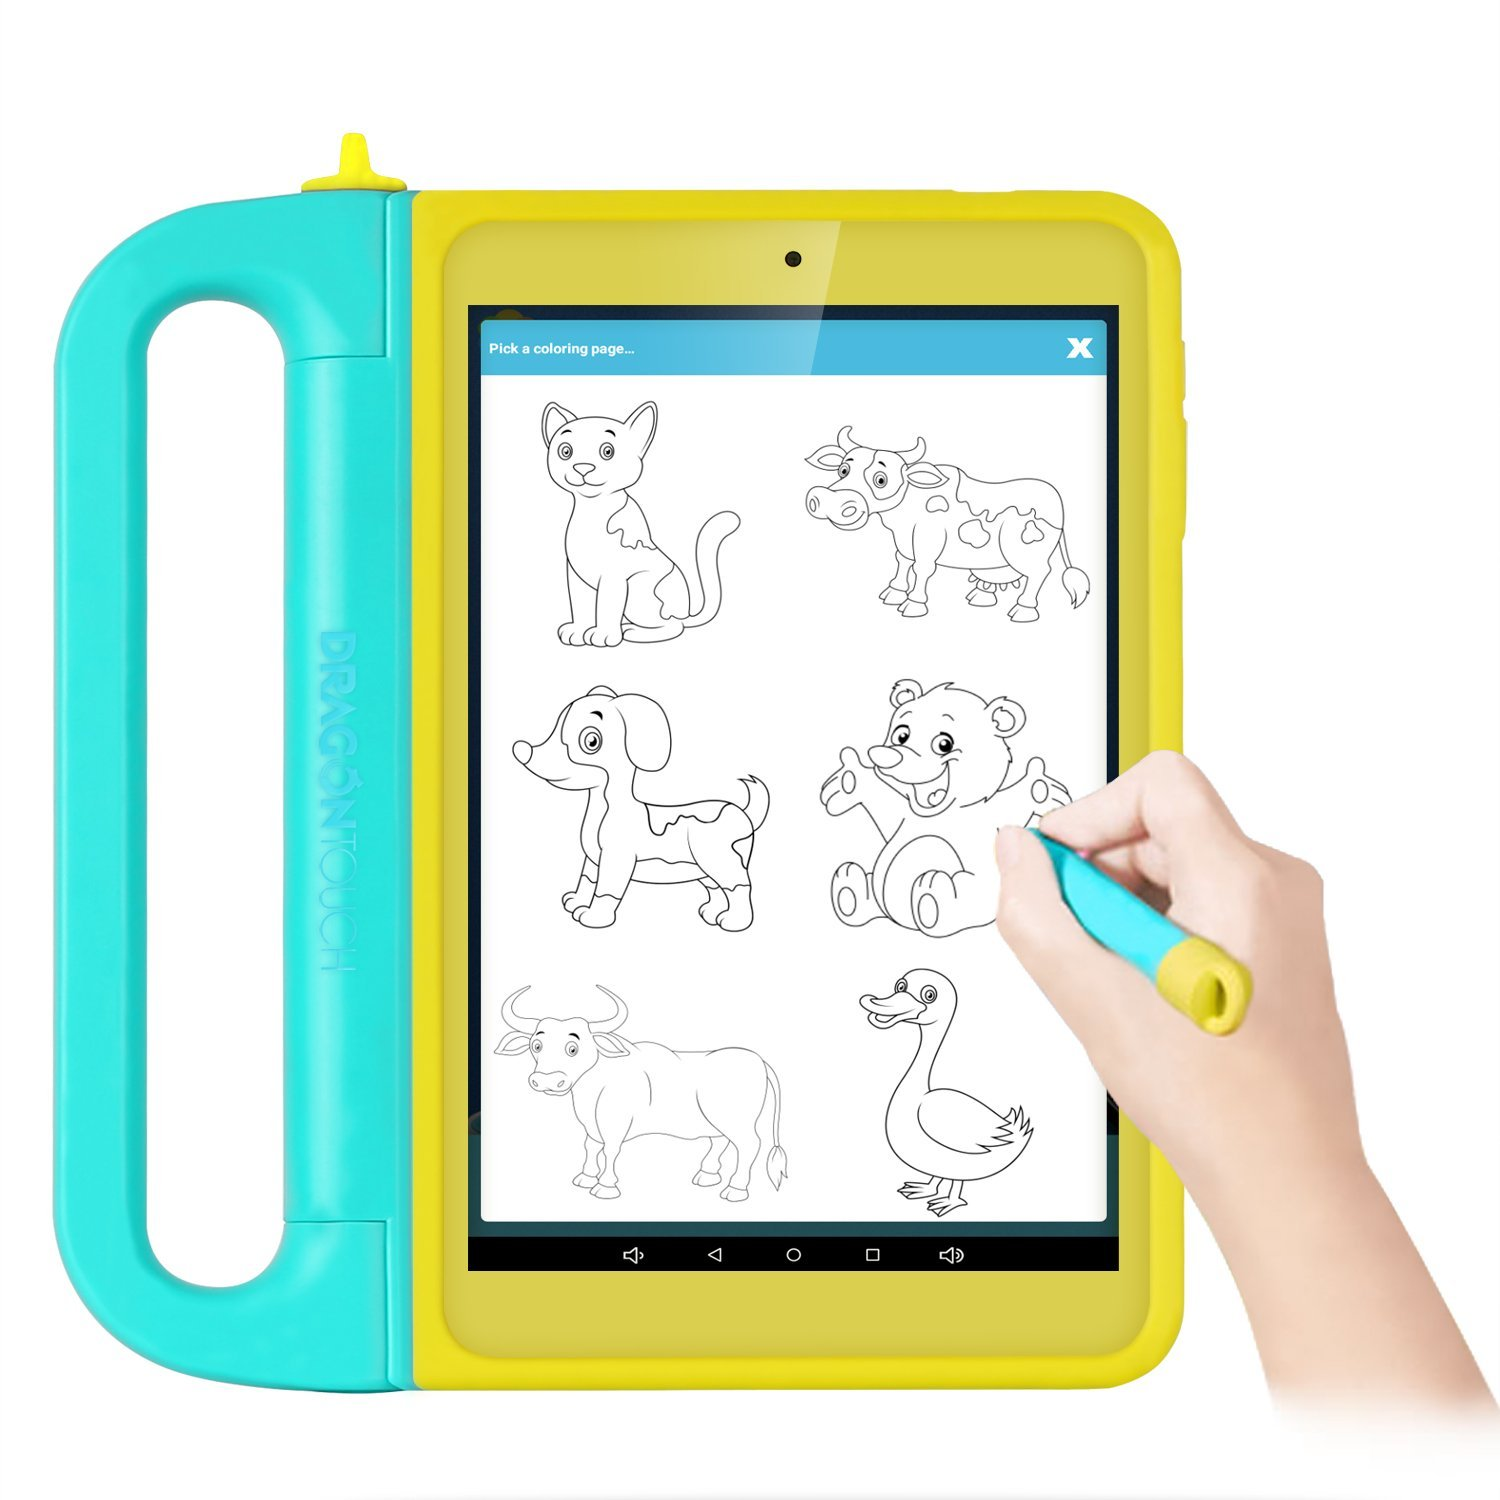 Dragon Touch K8 8inch Kids Tablet Kidoz Pre-Installed 2GB RAM 16GB Nand Flash IPS Display Android 6.0 Marshmallow Android Tablet 8 inch kids quad core tablet kidoz pre installed 2gb ram 16gb rom 1280 800 ips display android 6 0 marshmallow android tablet